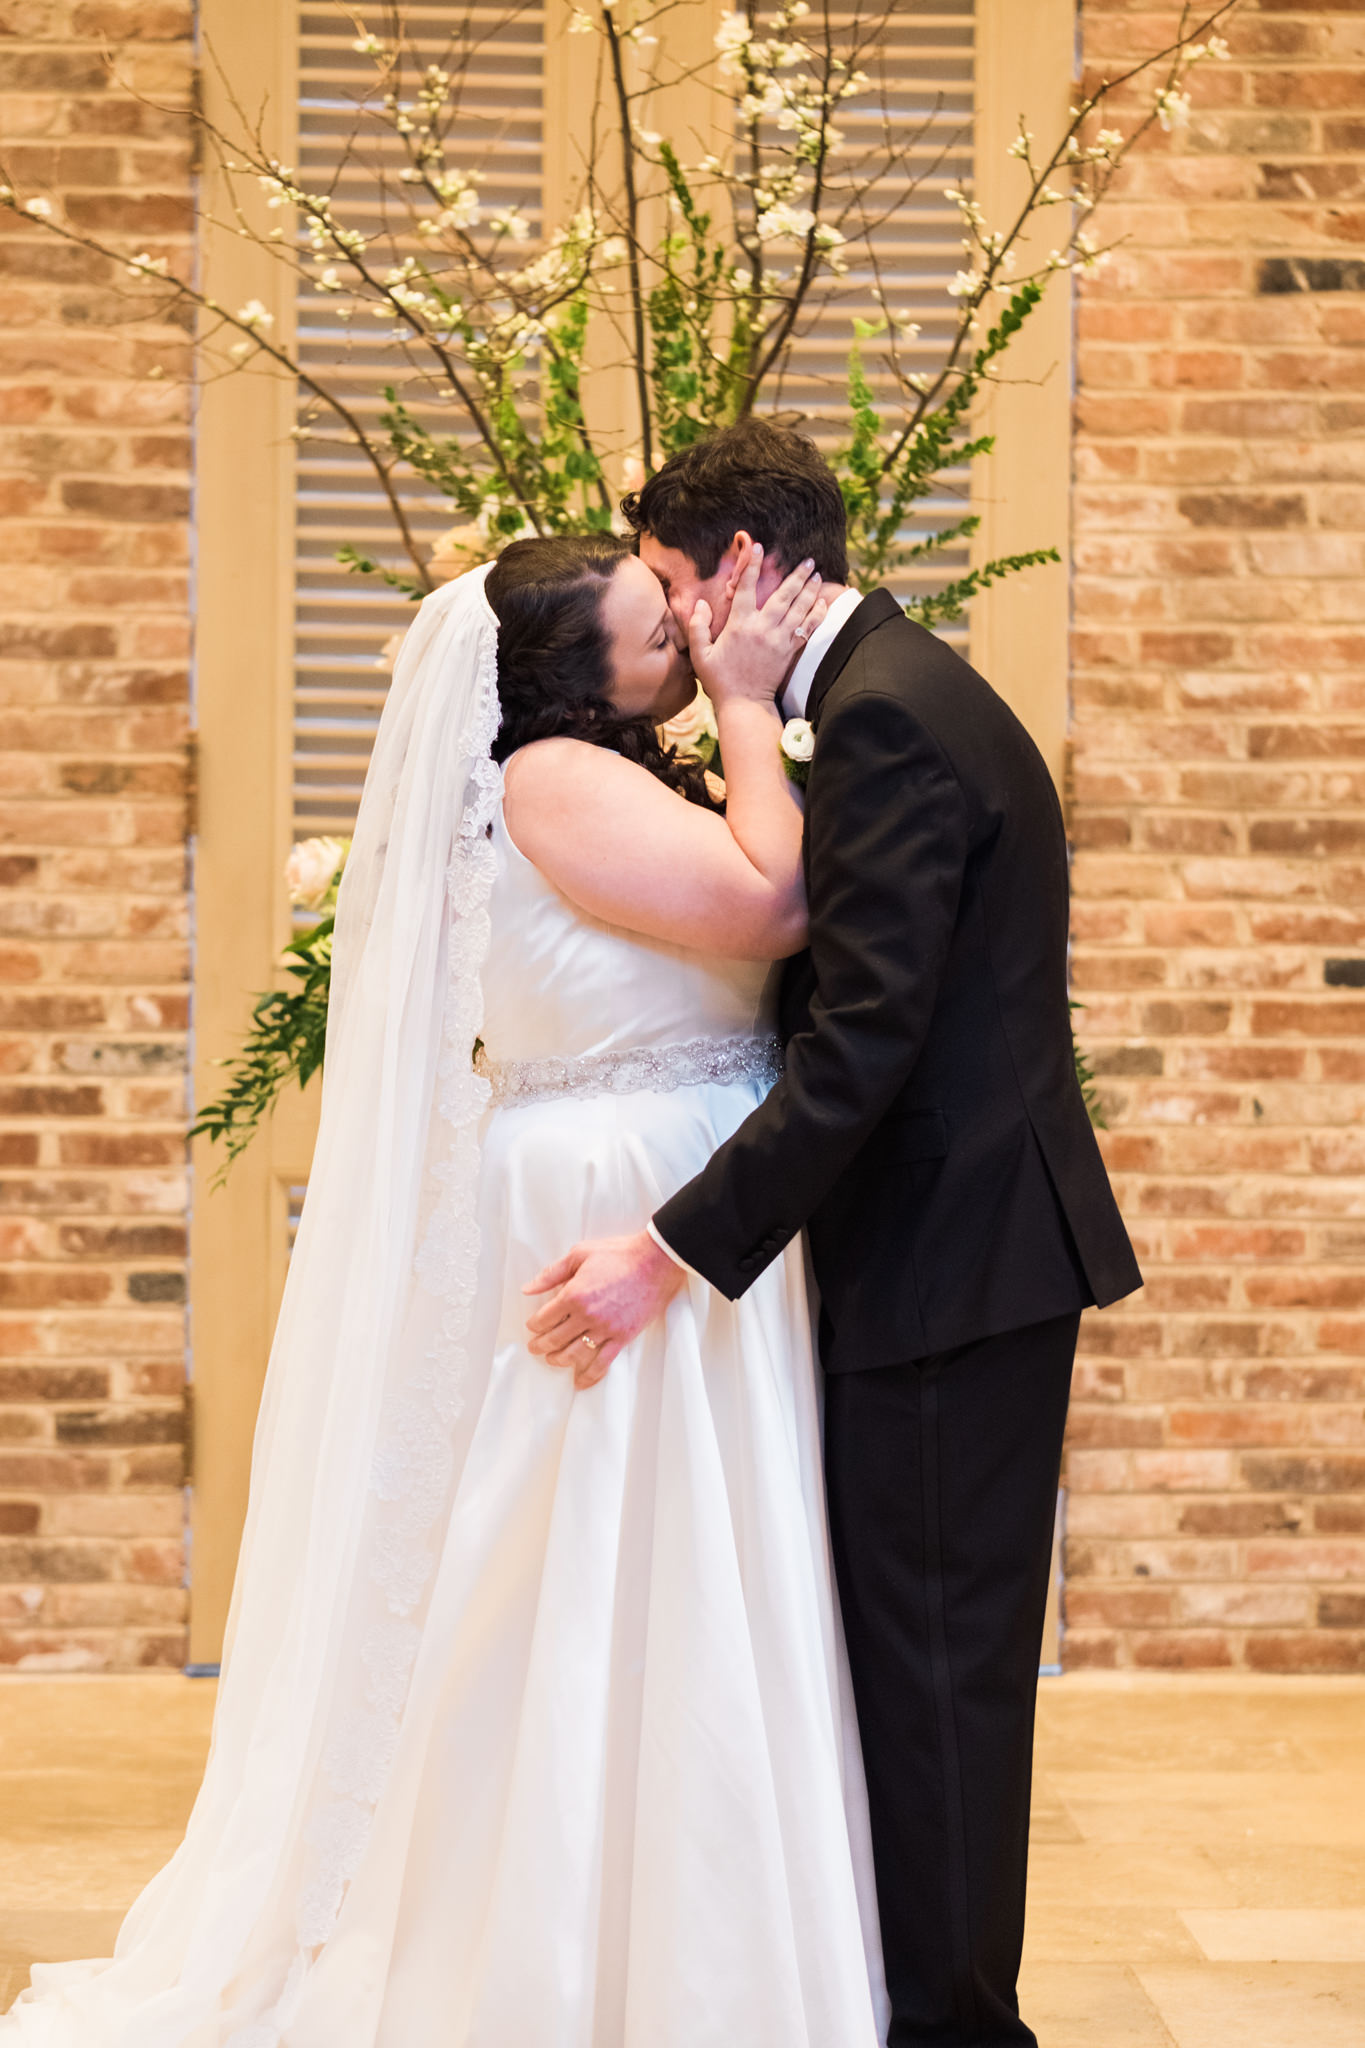 Lee&Steven_Wedding_Blog_0041.jpg